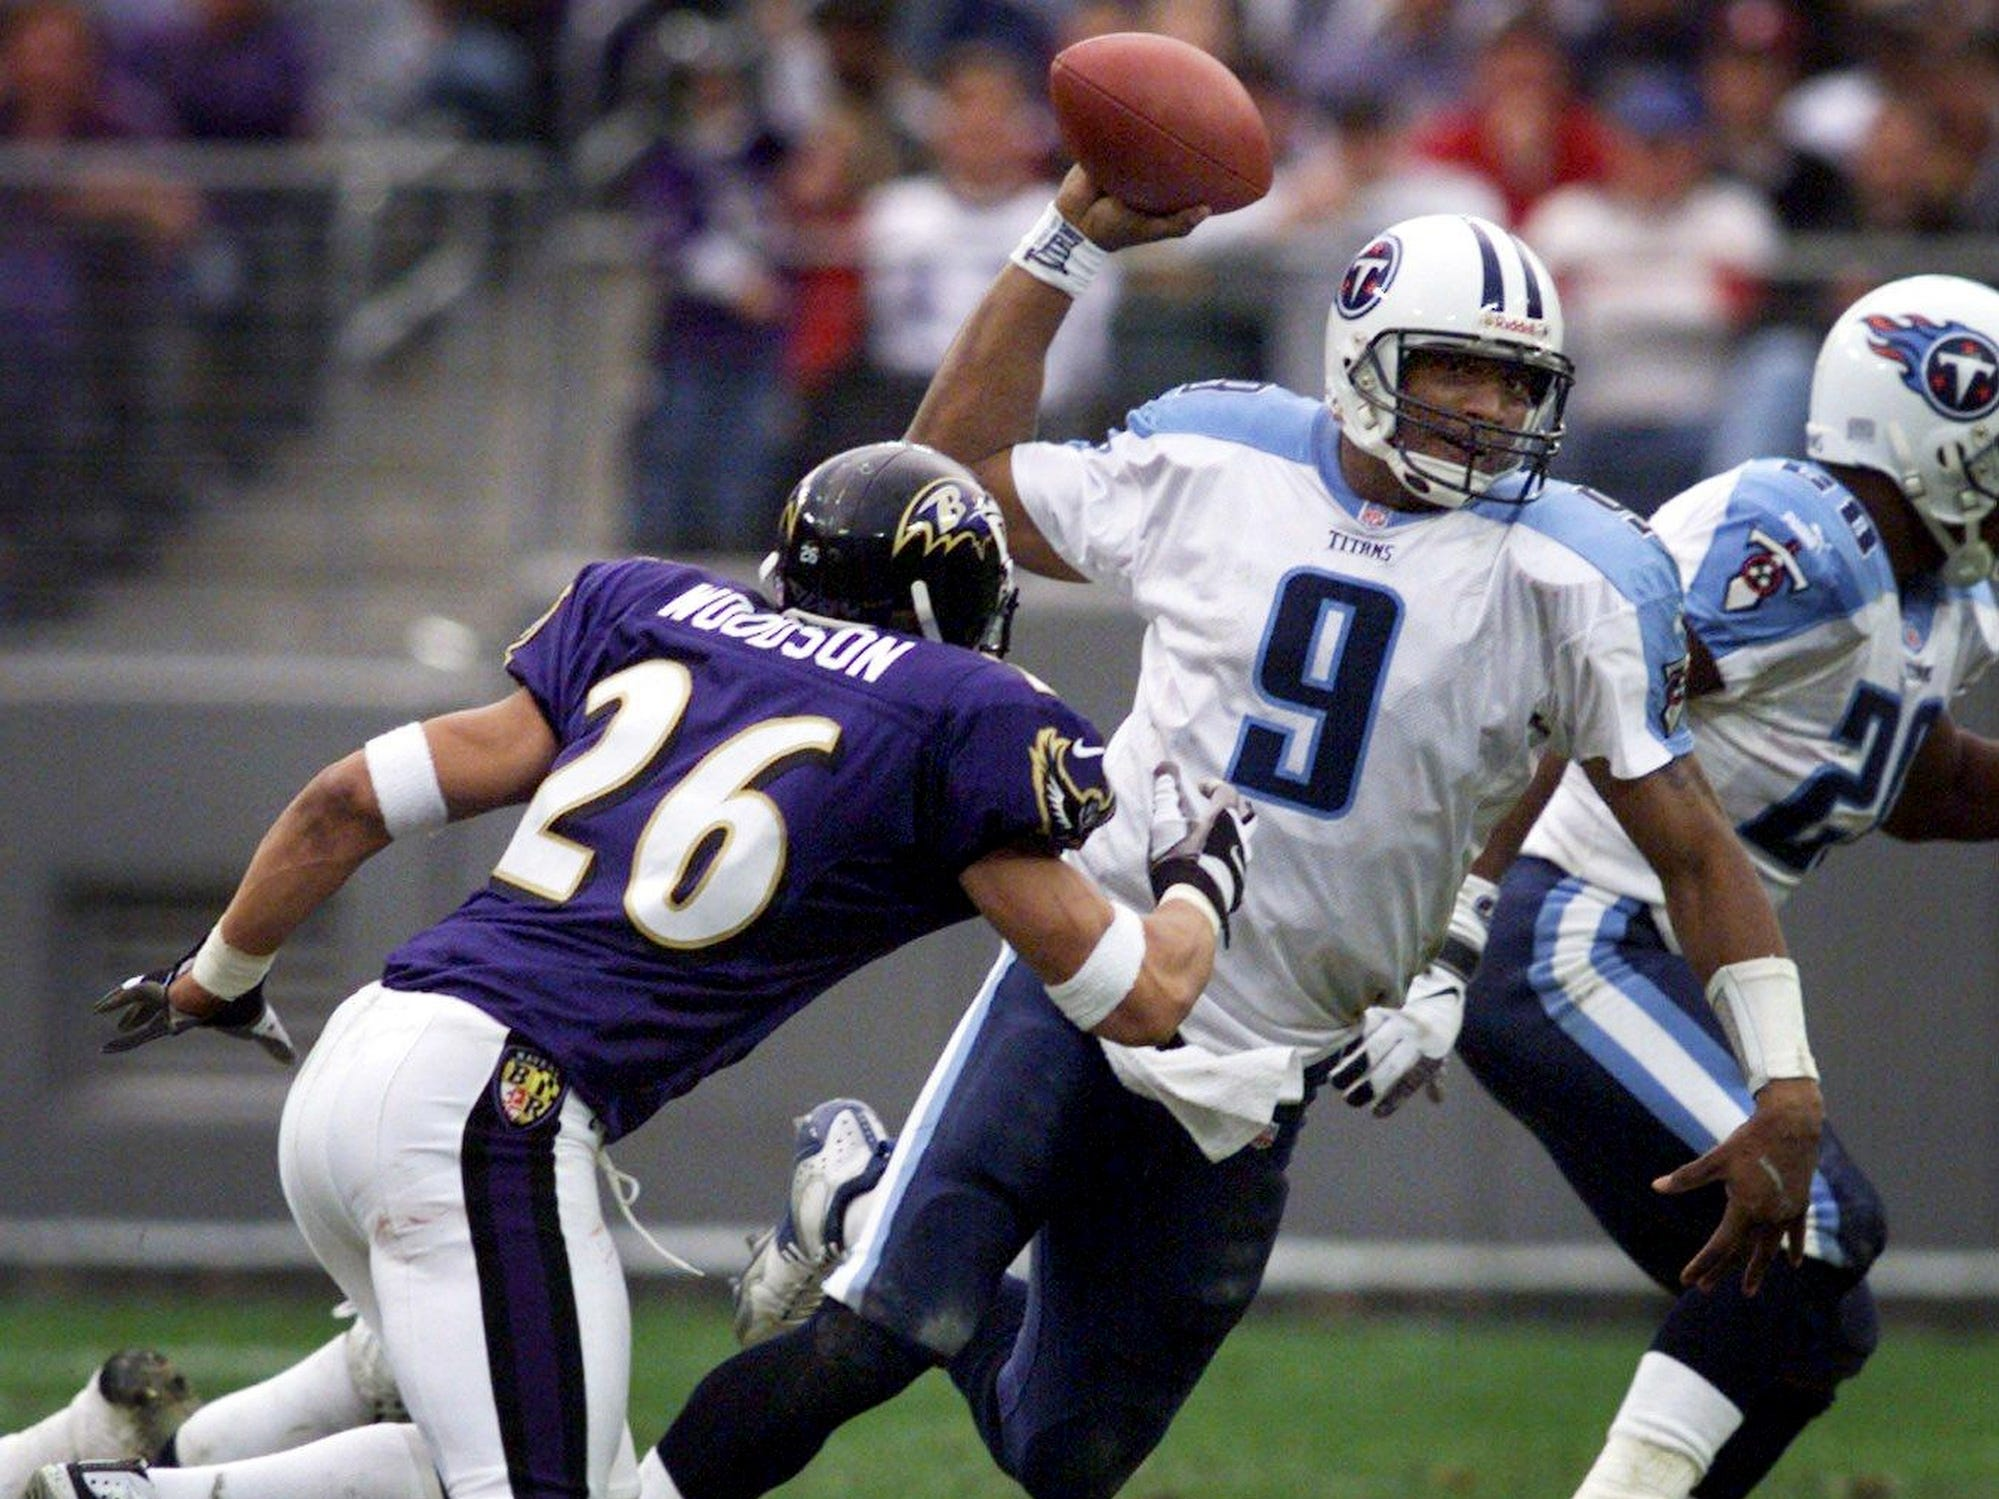 Tennessee Titans quarterback Steve McNair (9) scrambles to make a pass as Baltimore Ravens defensive back Rod Woodson (26) closes in for a sack, but the play ended as an incomplete pass. The Titans got beaten badly 41-14 on the road Dec. 5, 1999.